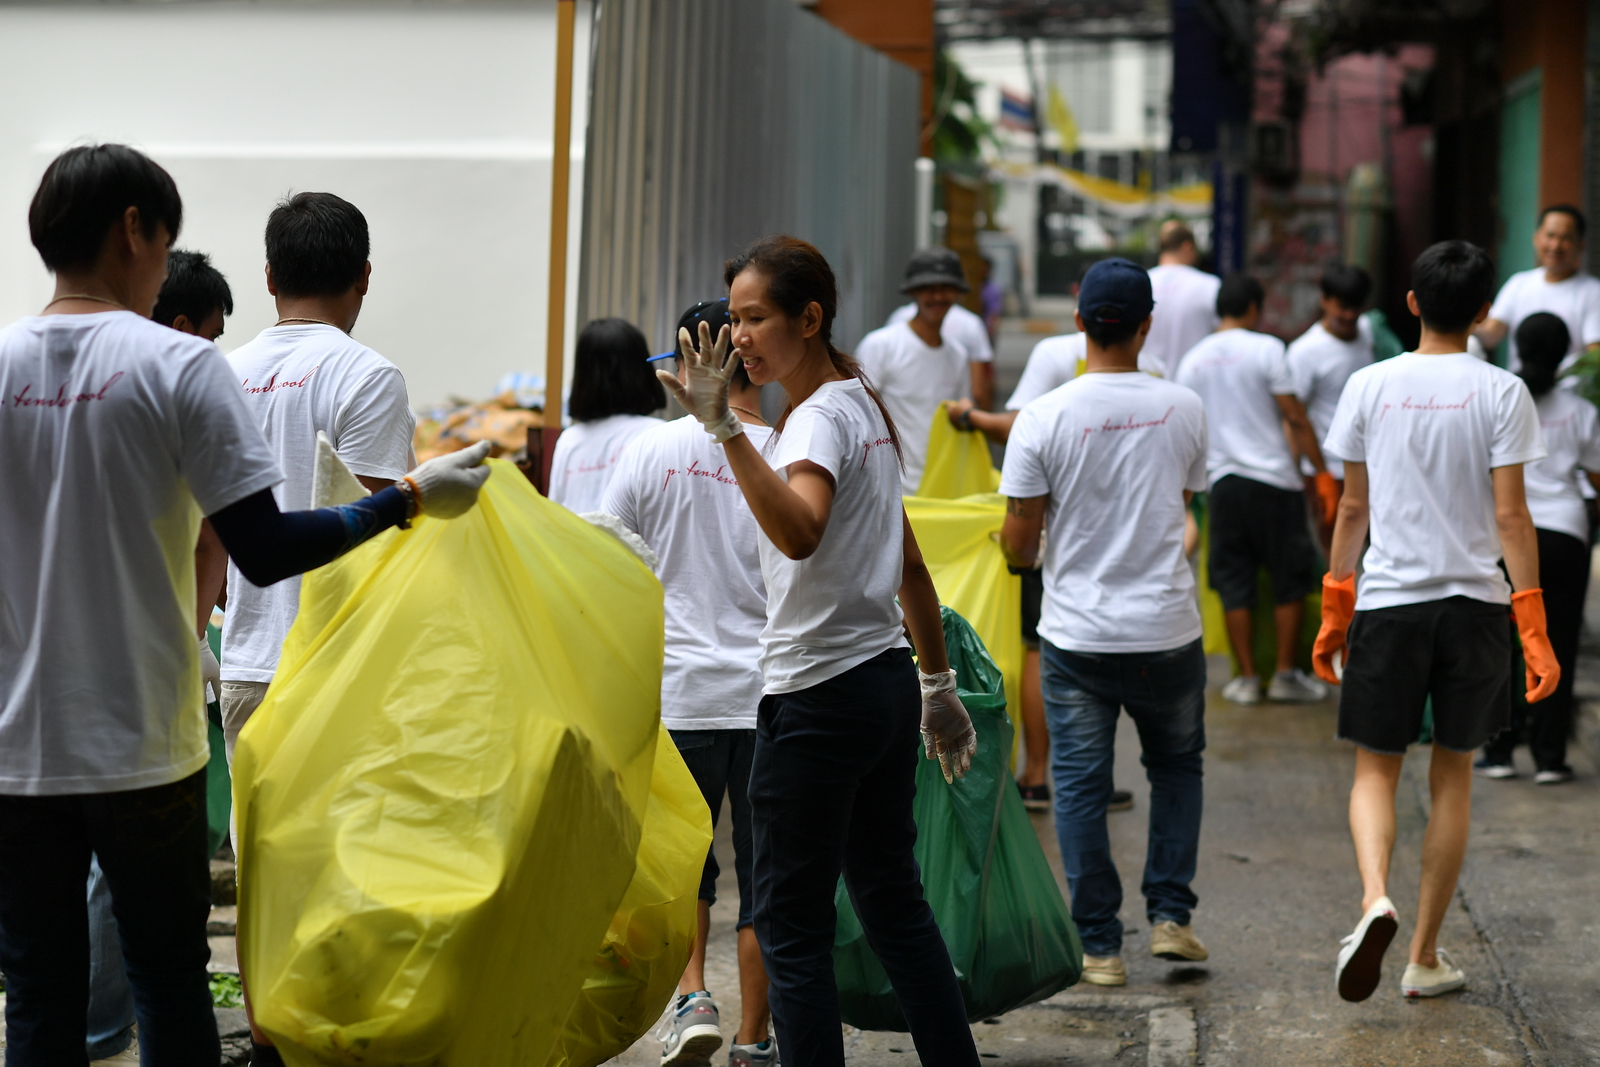 PTendercool-Event-Clean Up The World-190921-111